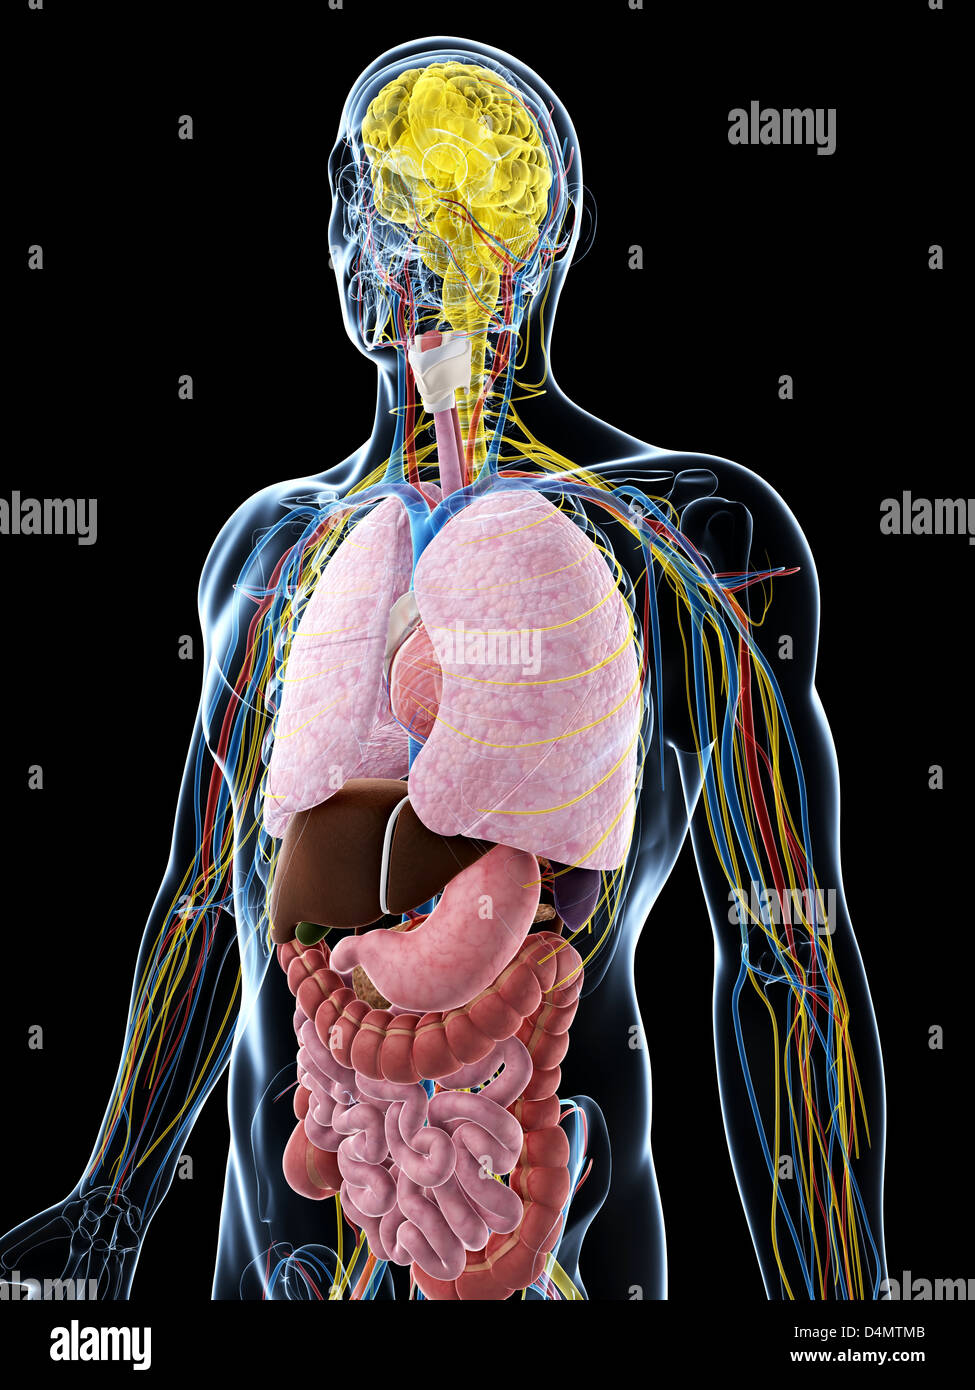 Anatomie Masculine Photo anatomie masculine banque d'images, photo stock: 54548155 - alamy